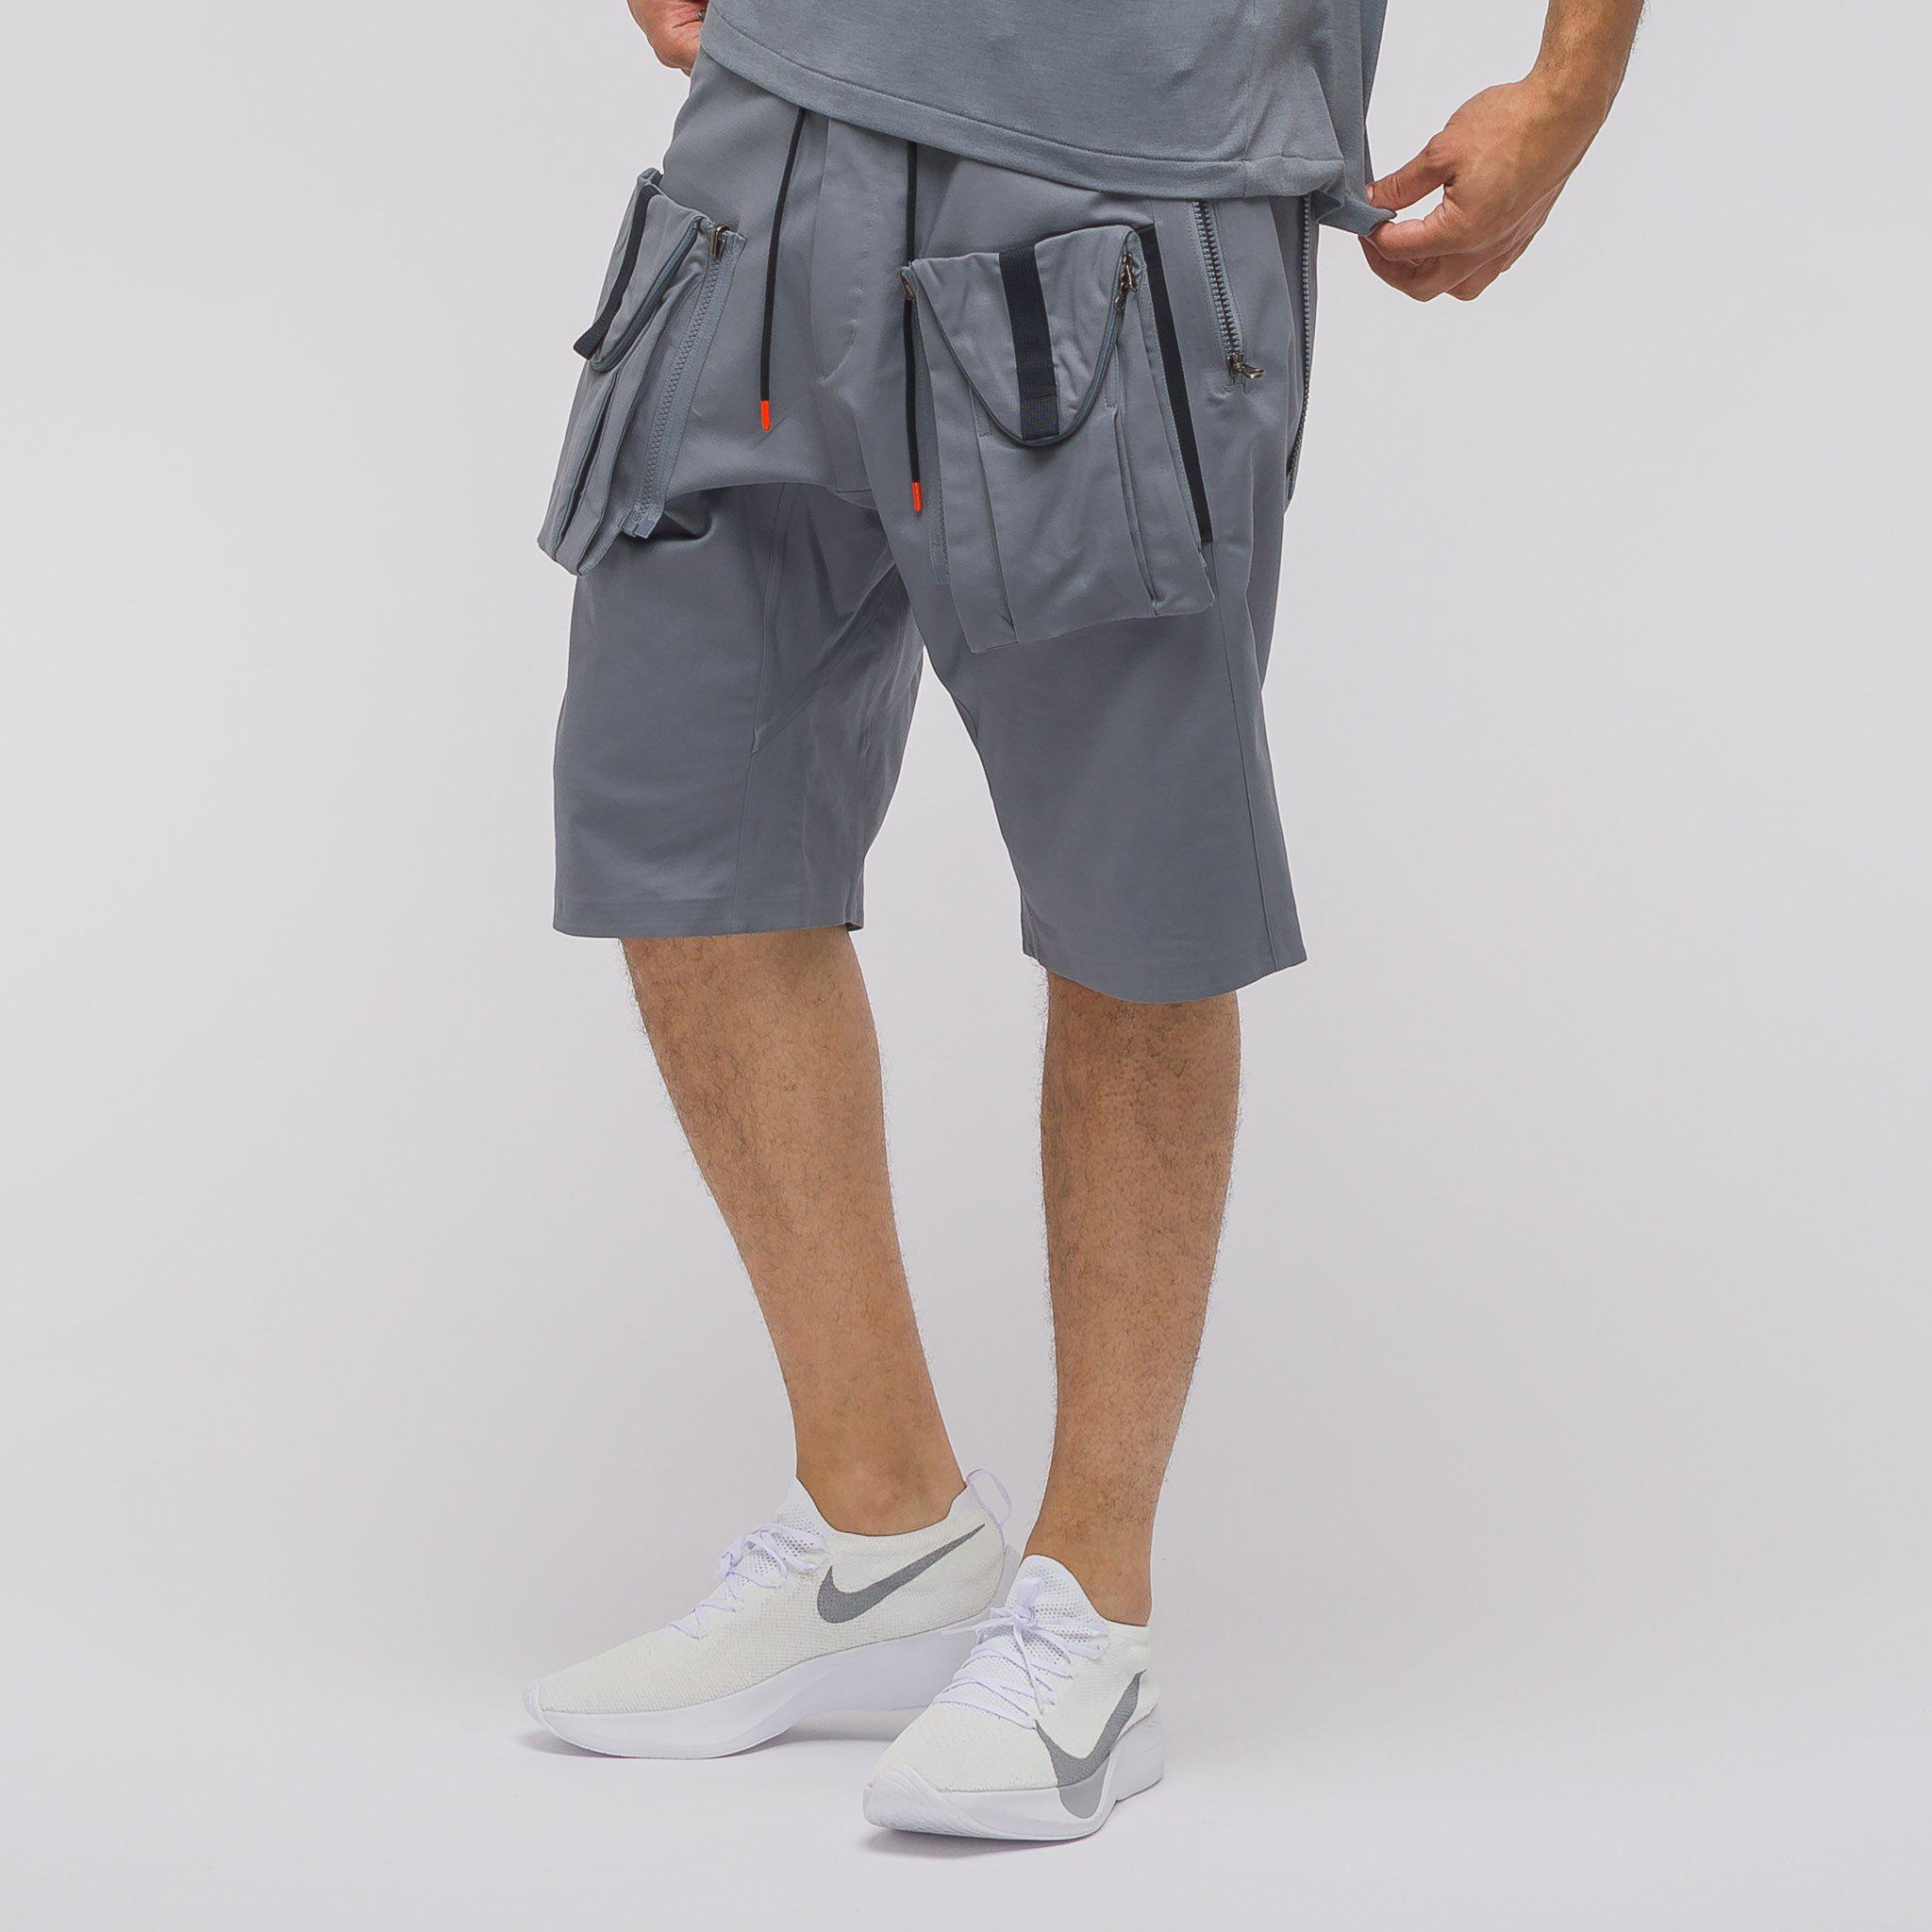 0baea7b0c4 Nike Acg Deploy Cargo Shorts In Cool Grey in Gray for Men - Lyst